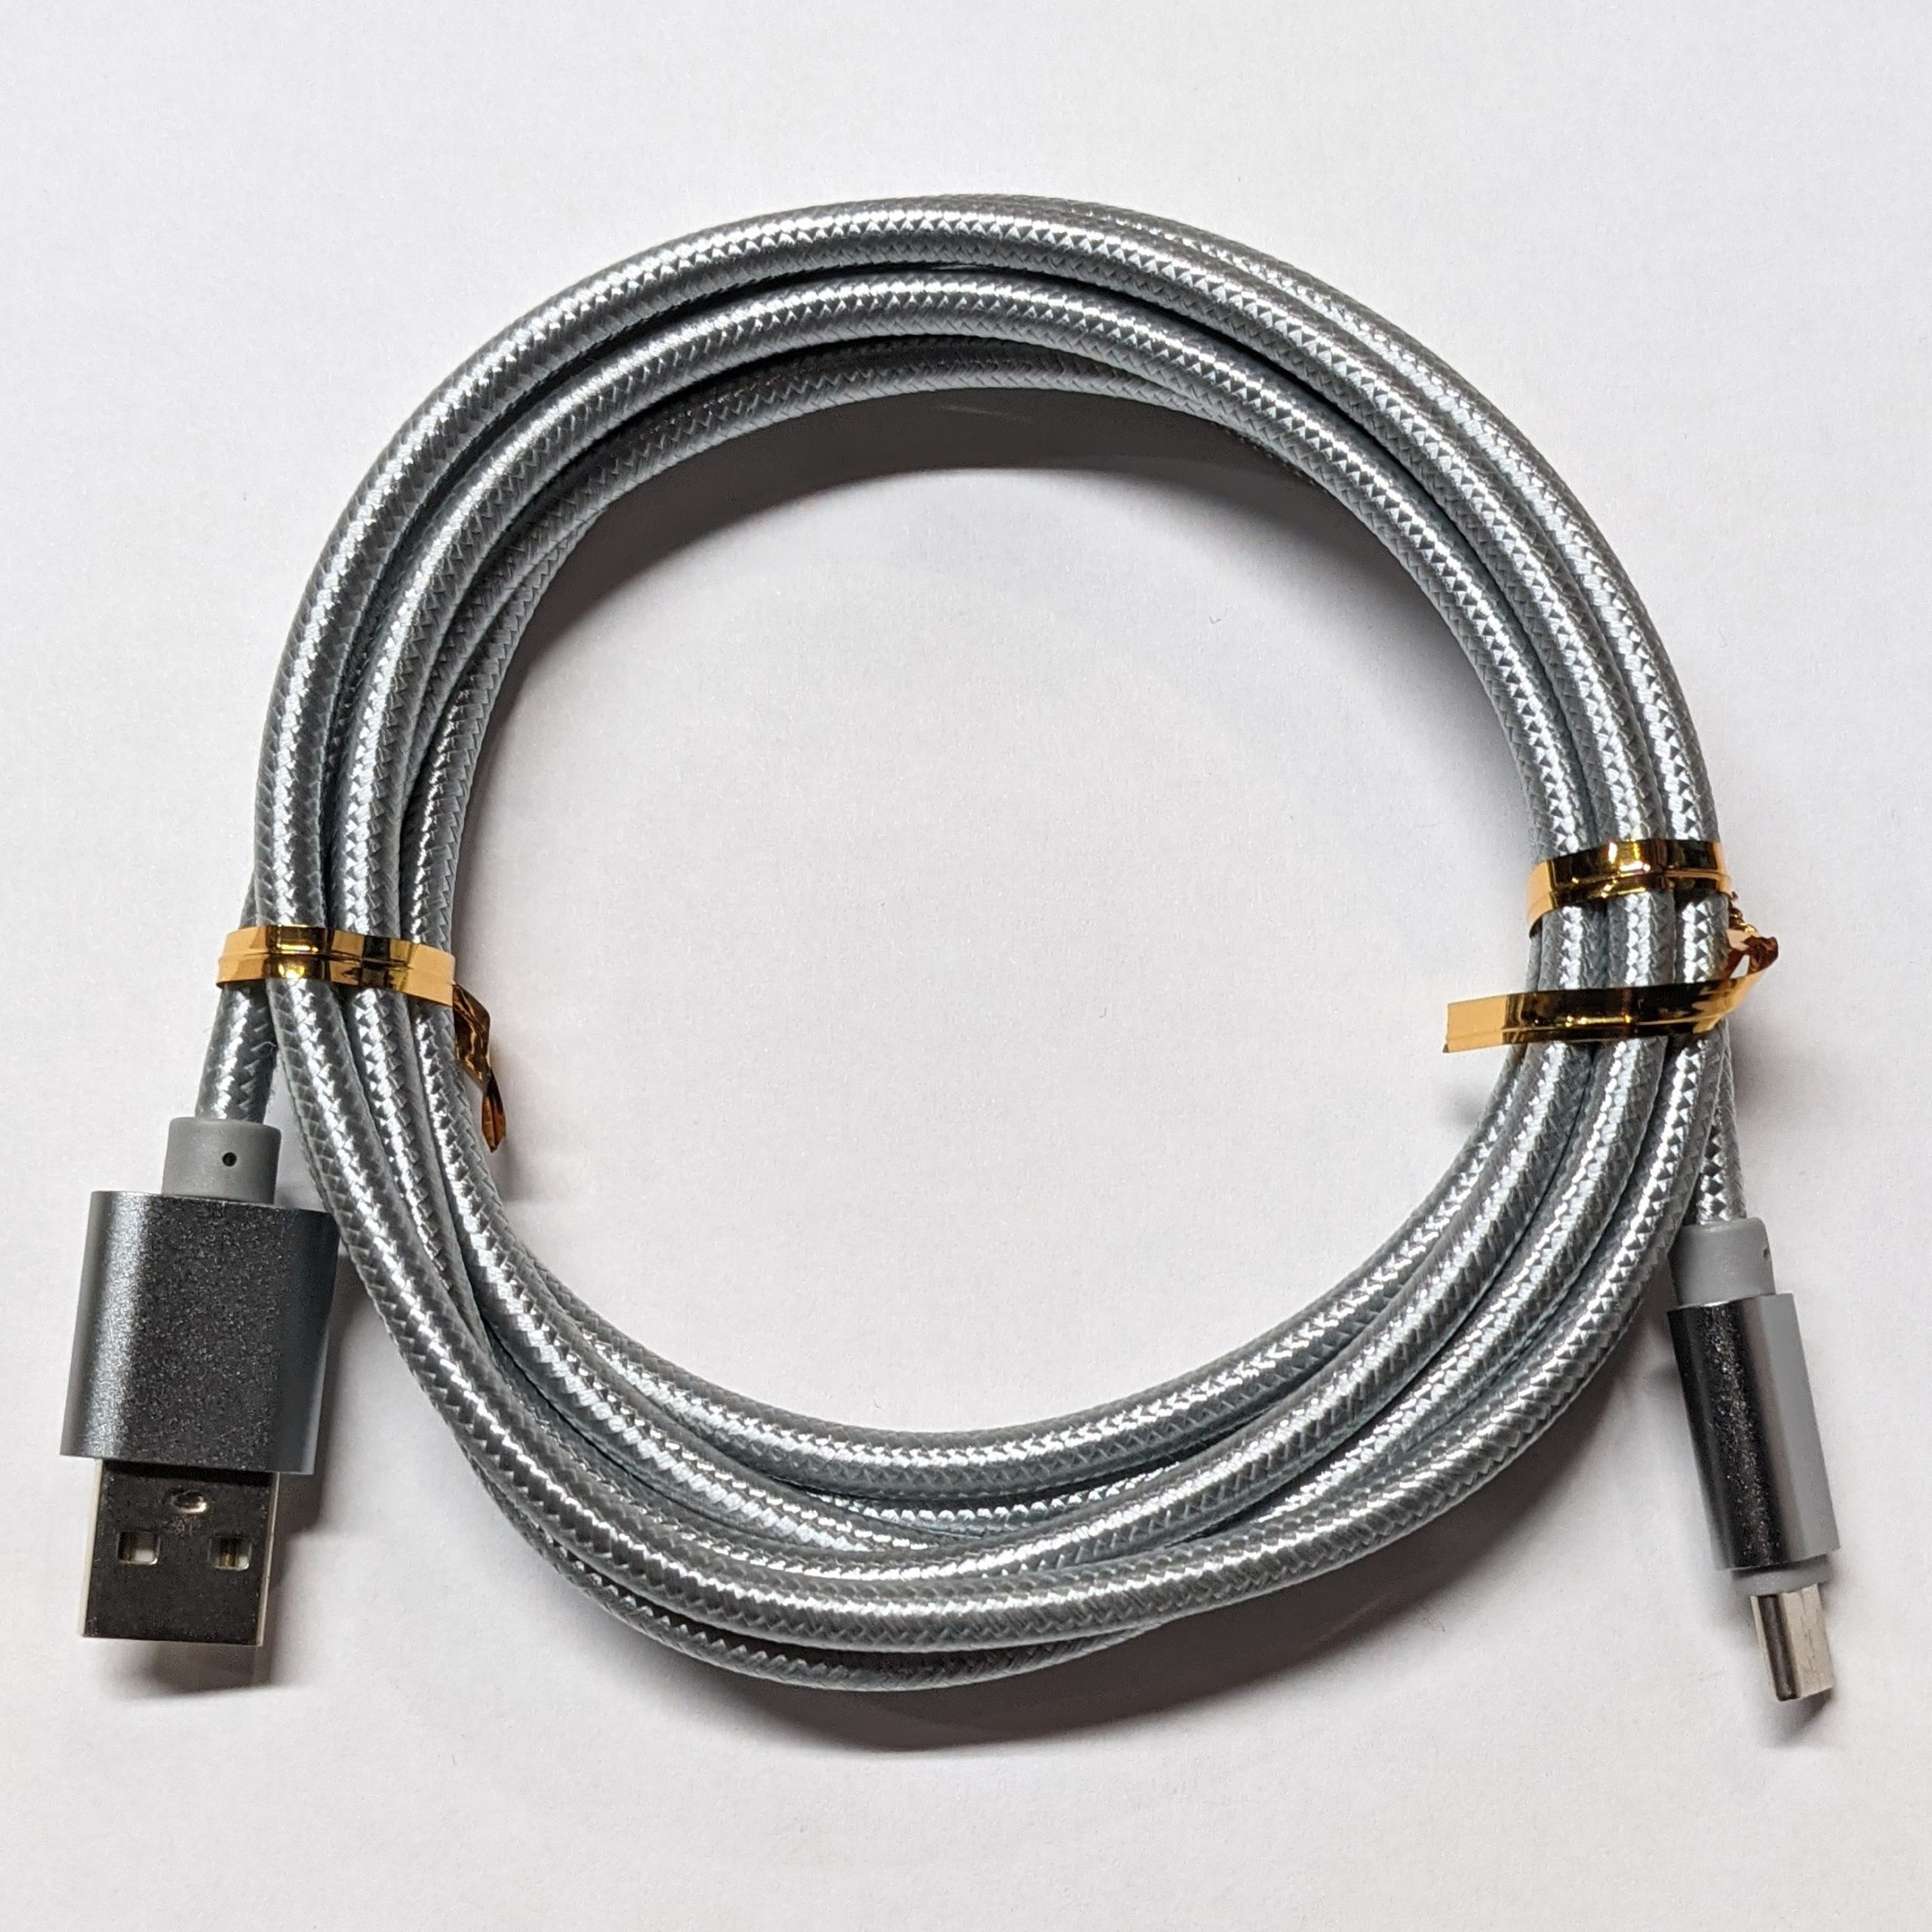 USB C Cable (2)